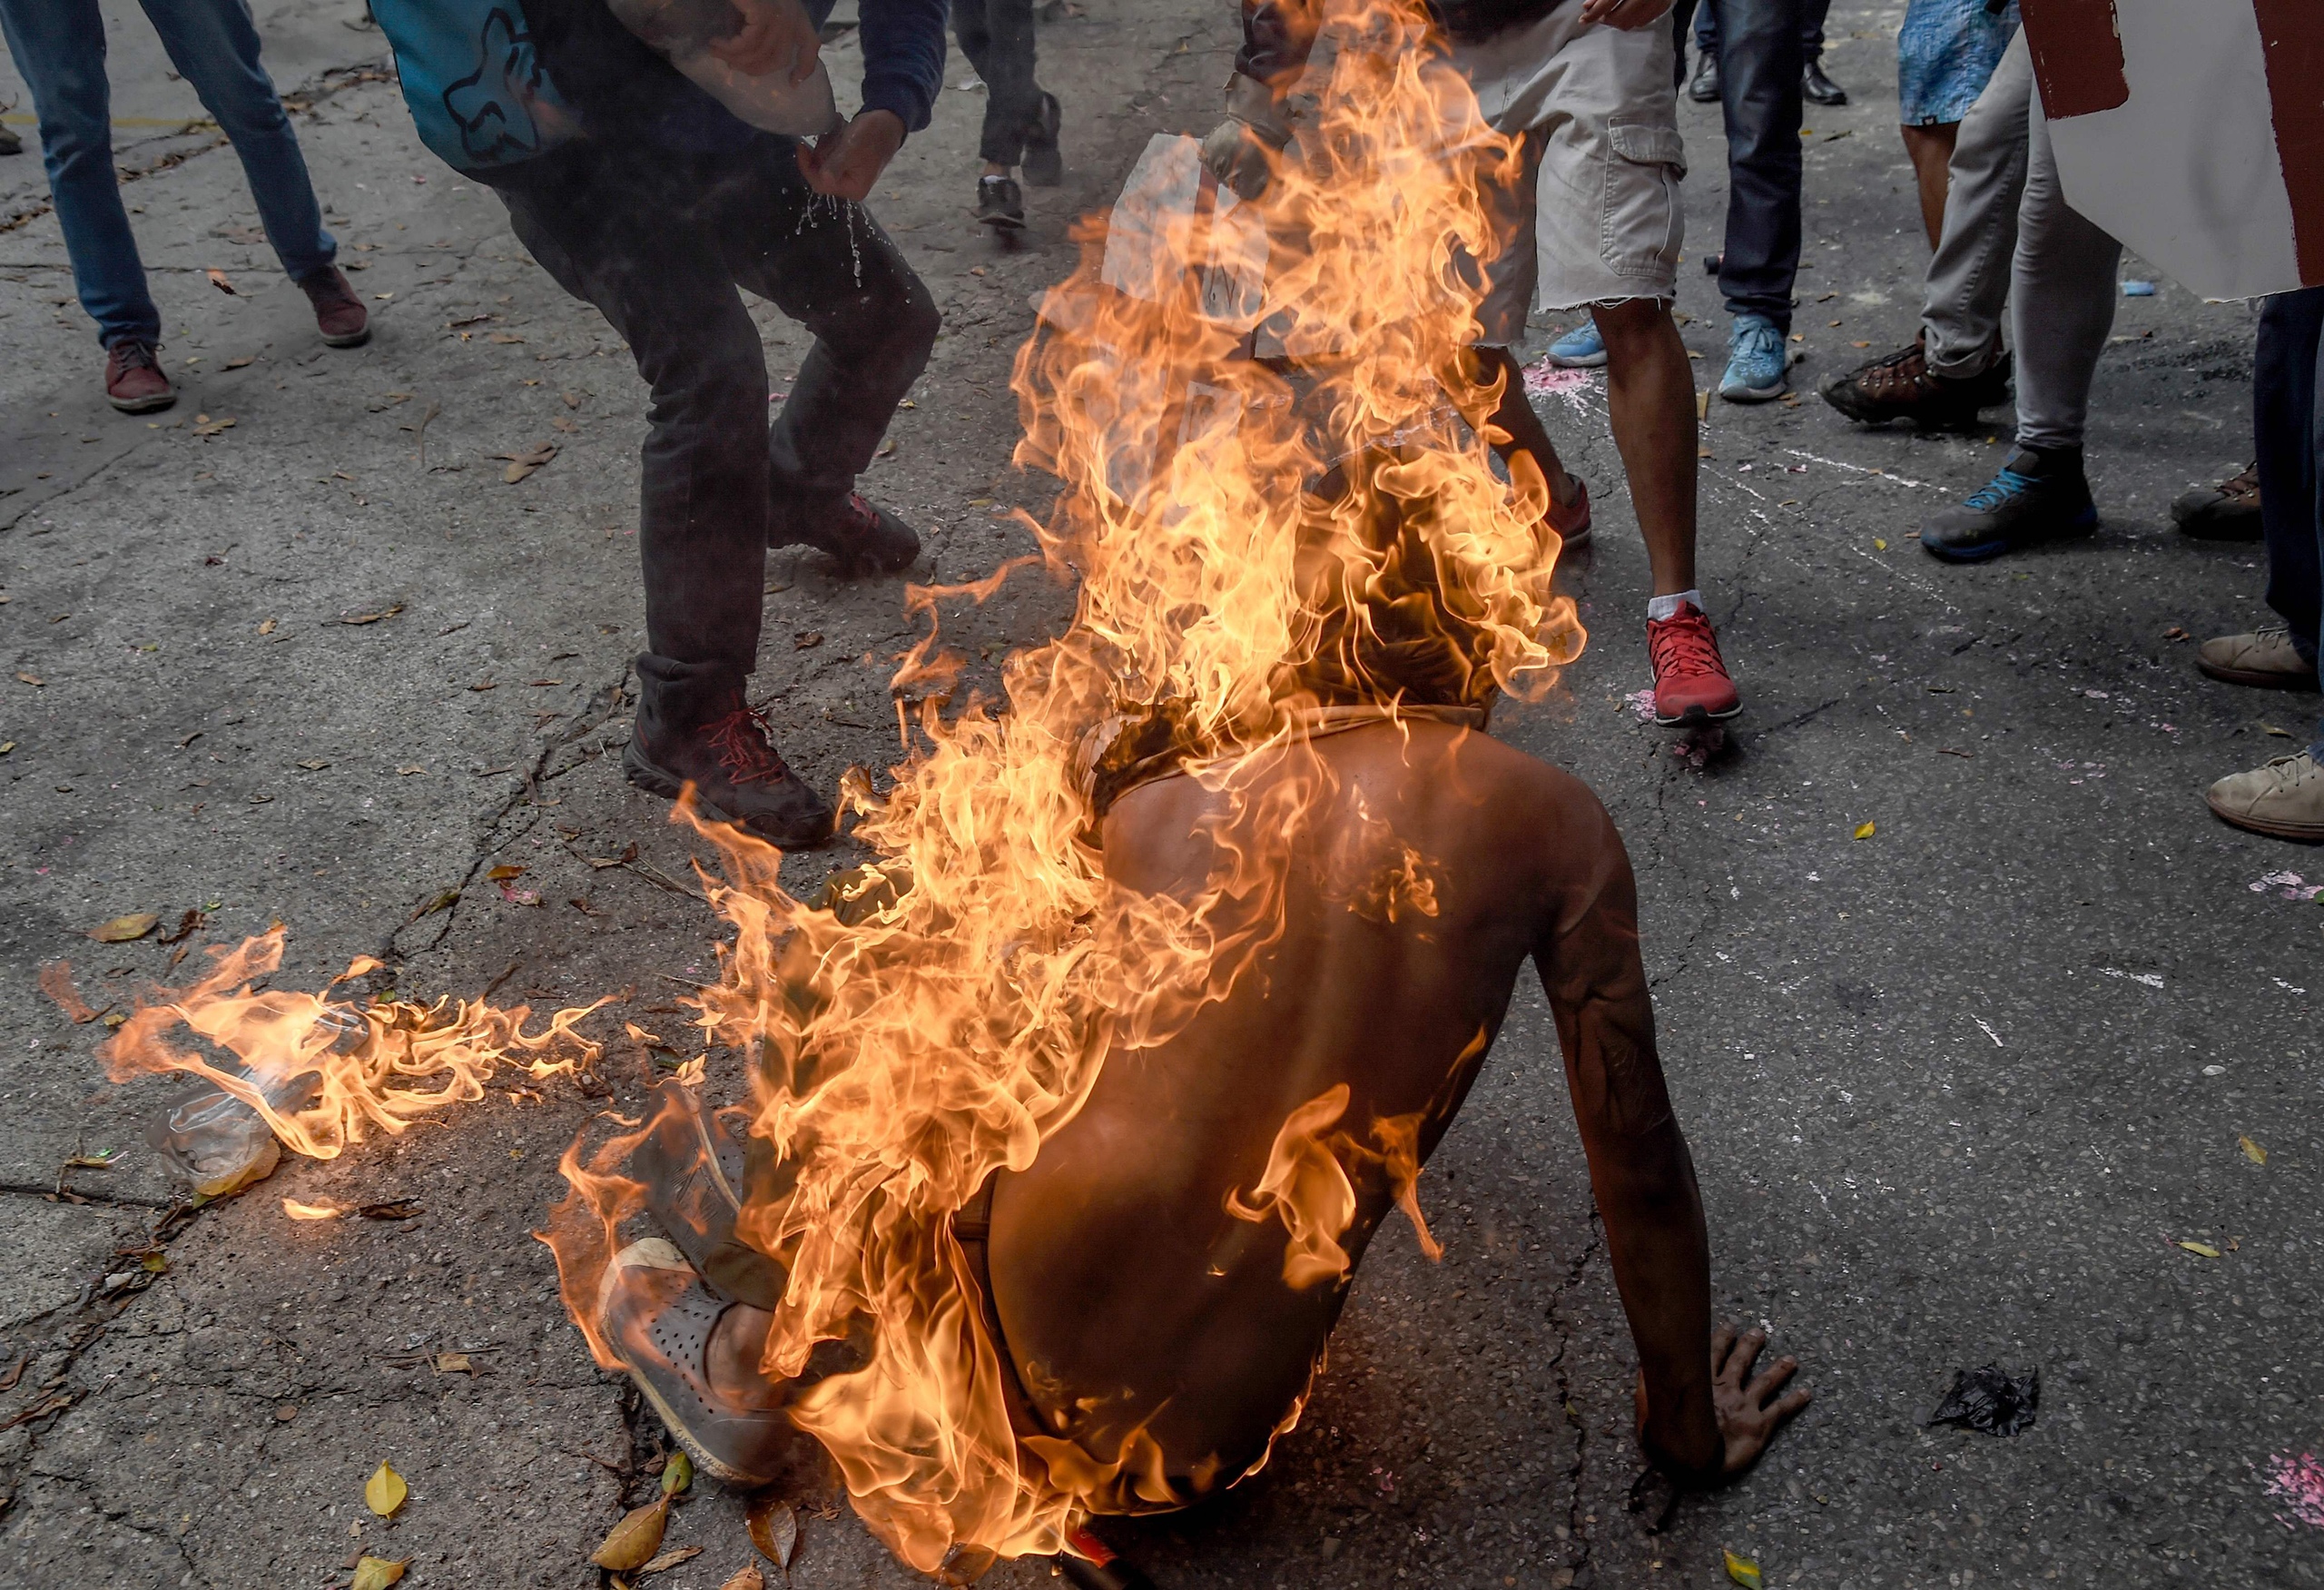 The man falls to the ground as others rush to his aid in Caracas on May 3, 2017.